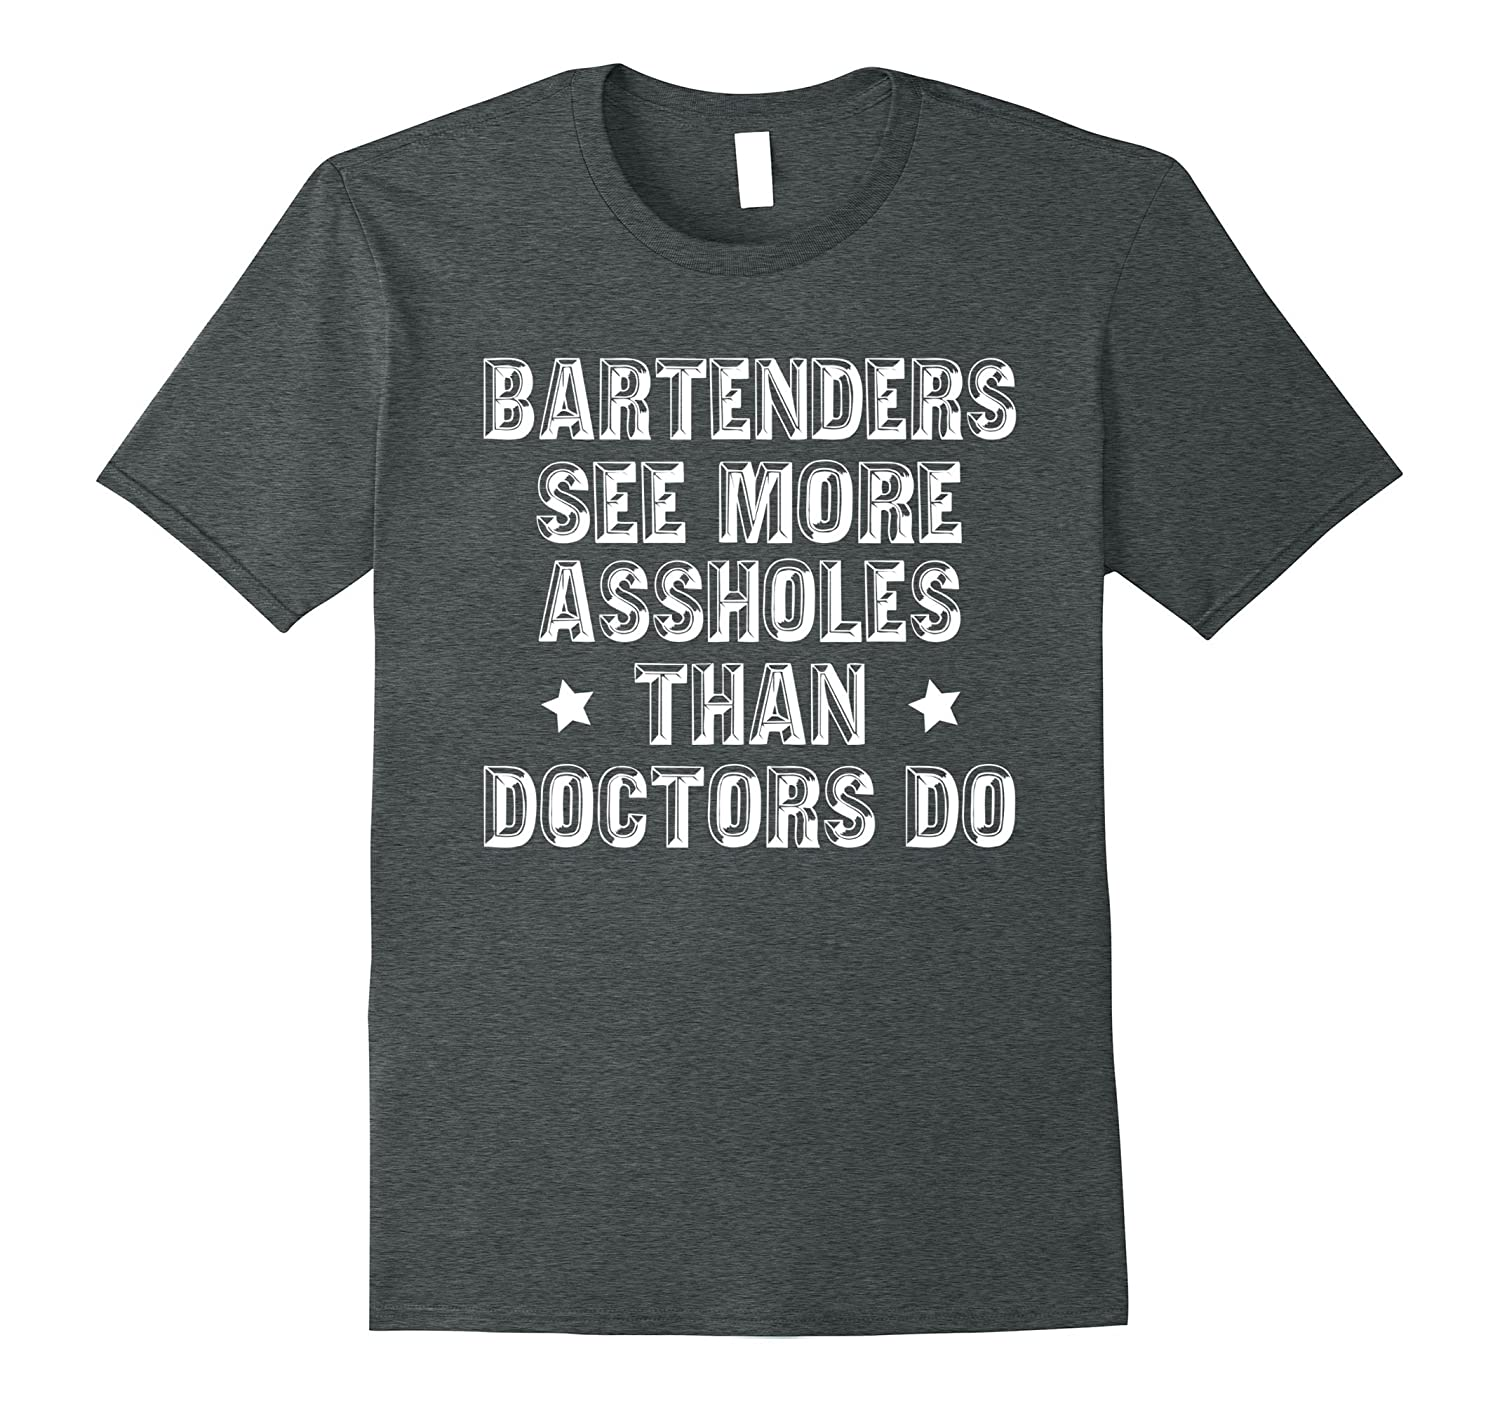 Bartenders See More Assholes Than Doctors Do Funny T-Shirts